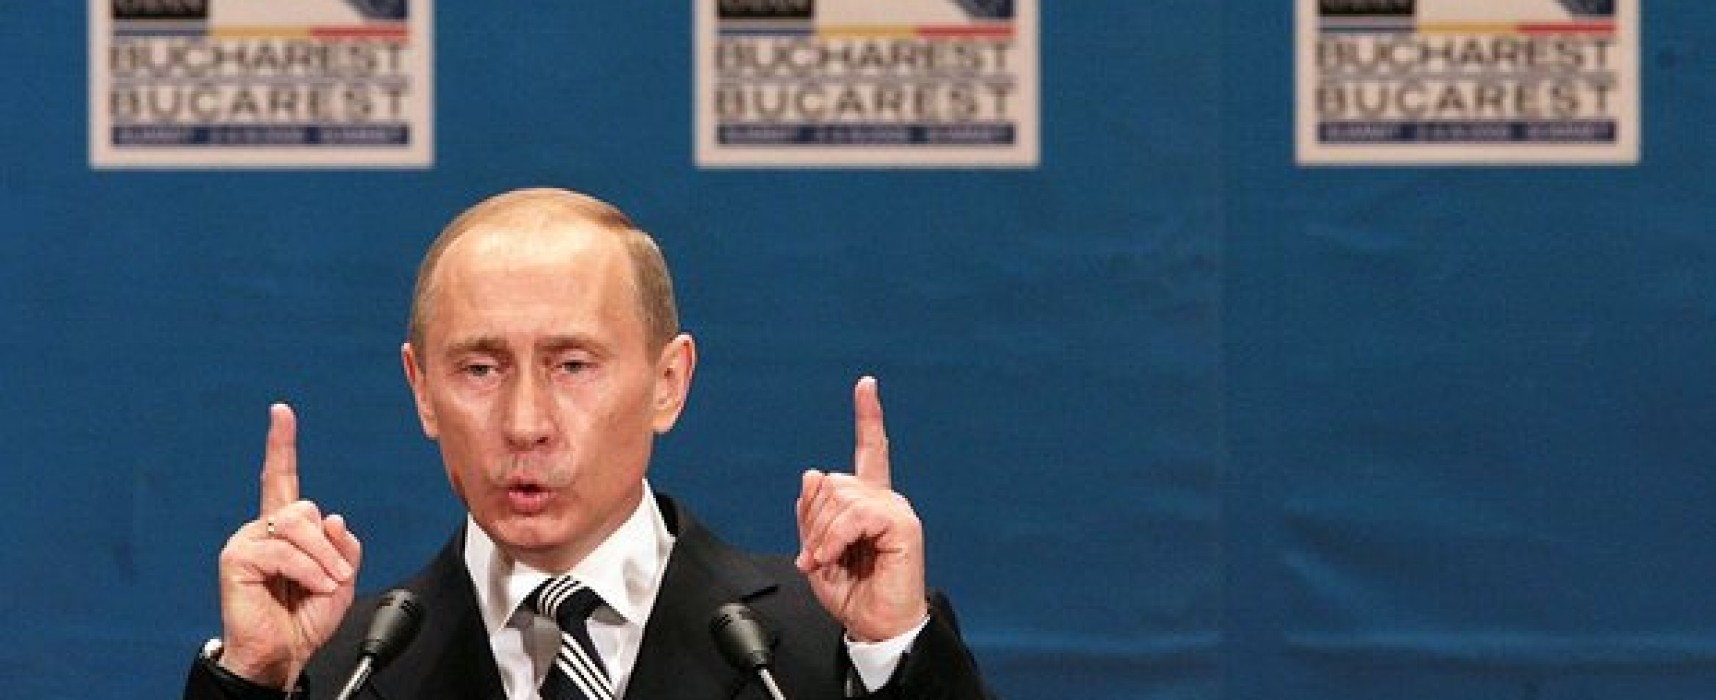 By matching Moscow's paranoia, the west plays into Putin's hands